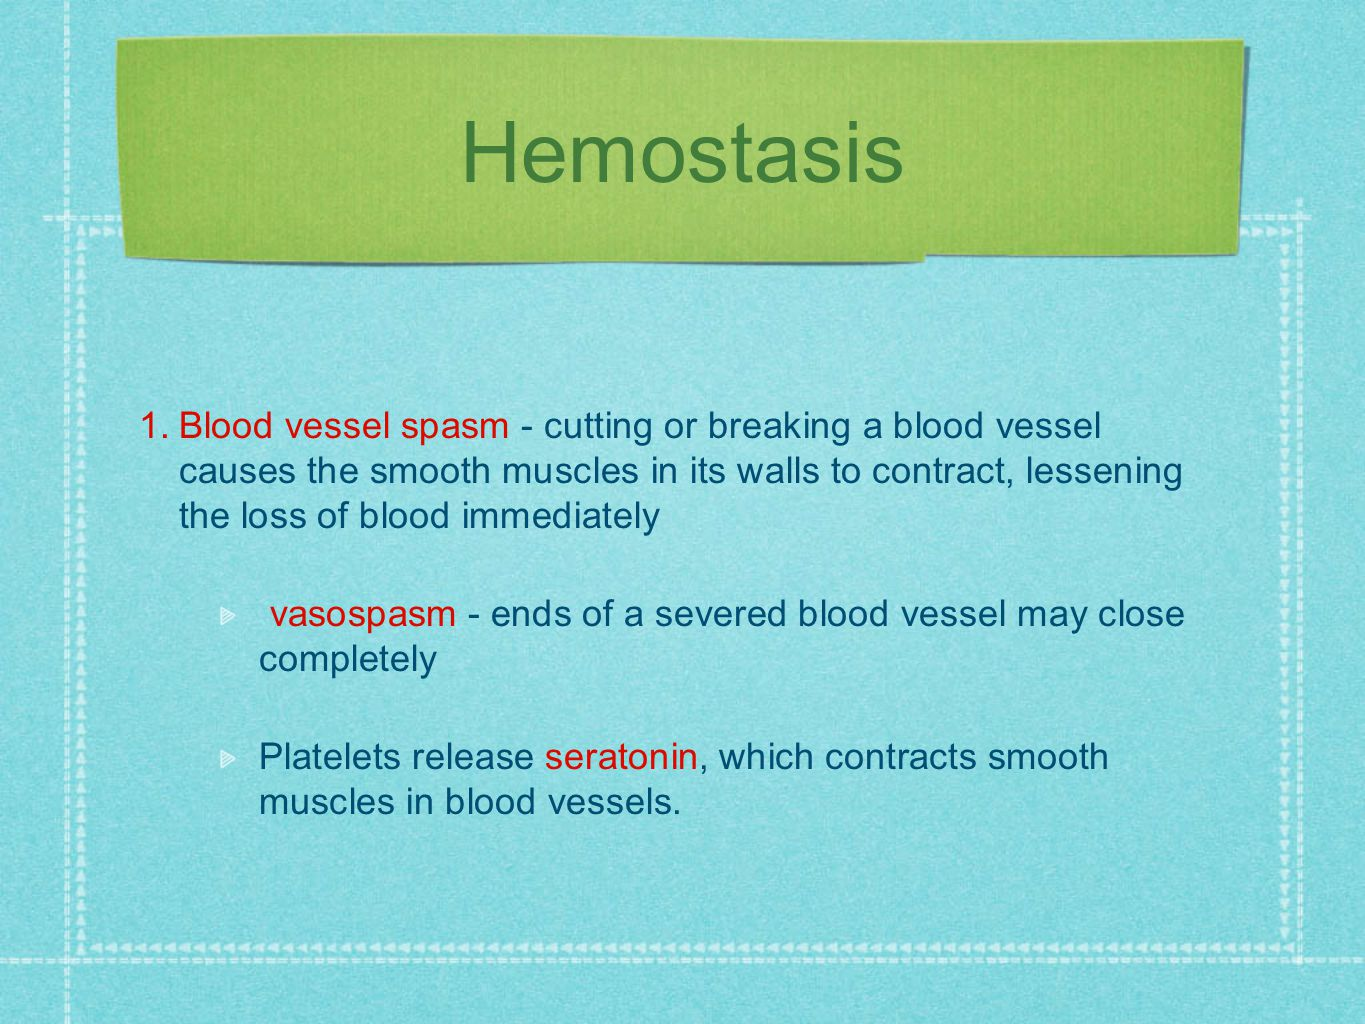 Hemostasis 1. Blood vessel spasm - cutting or breaking a blood vessel causes the smooth muscles in its walls to contract, lessening the loss of blood